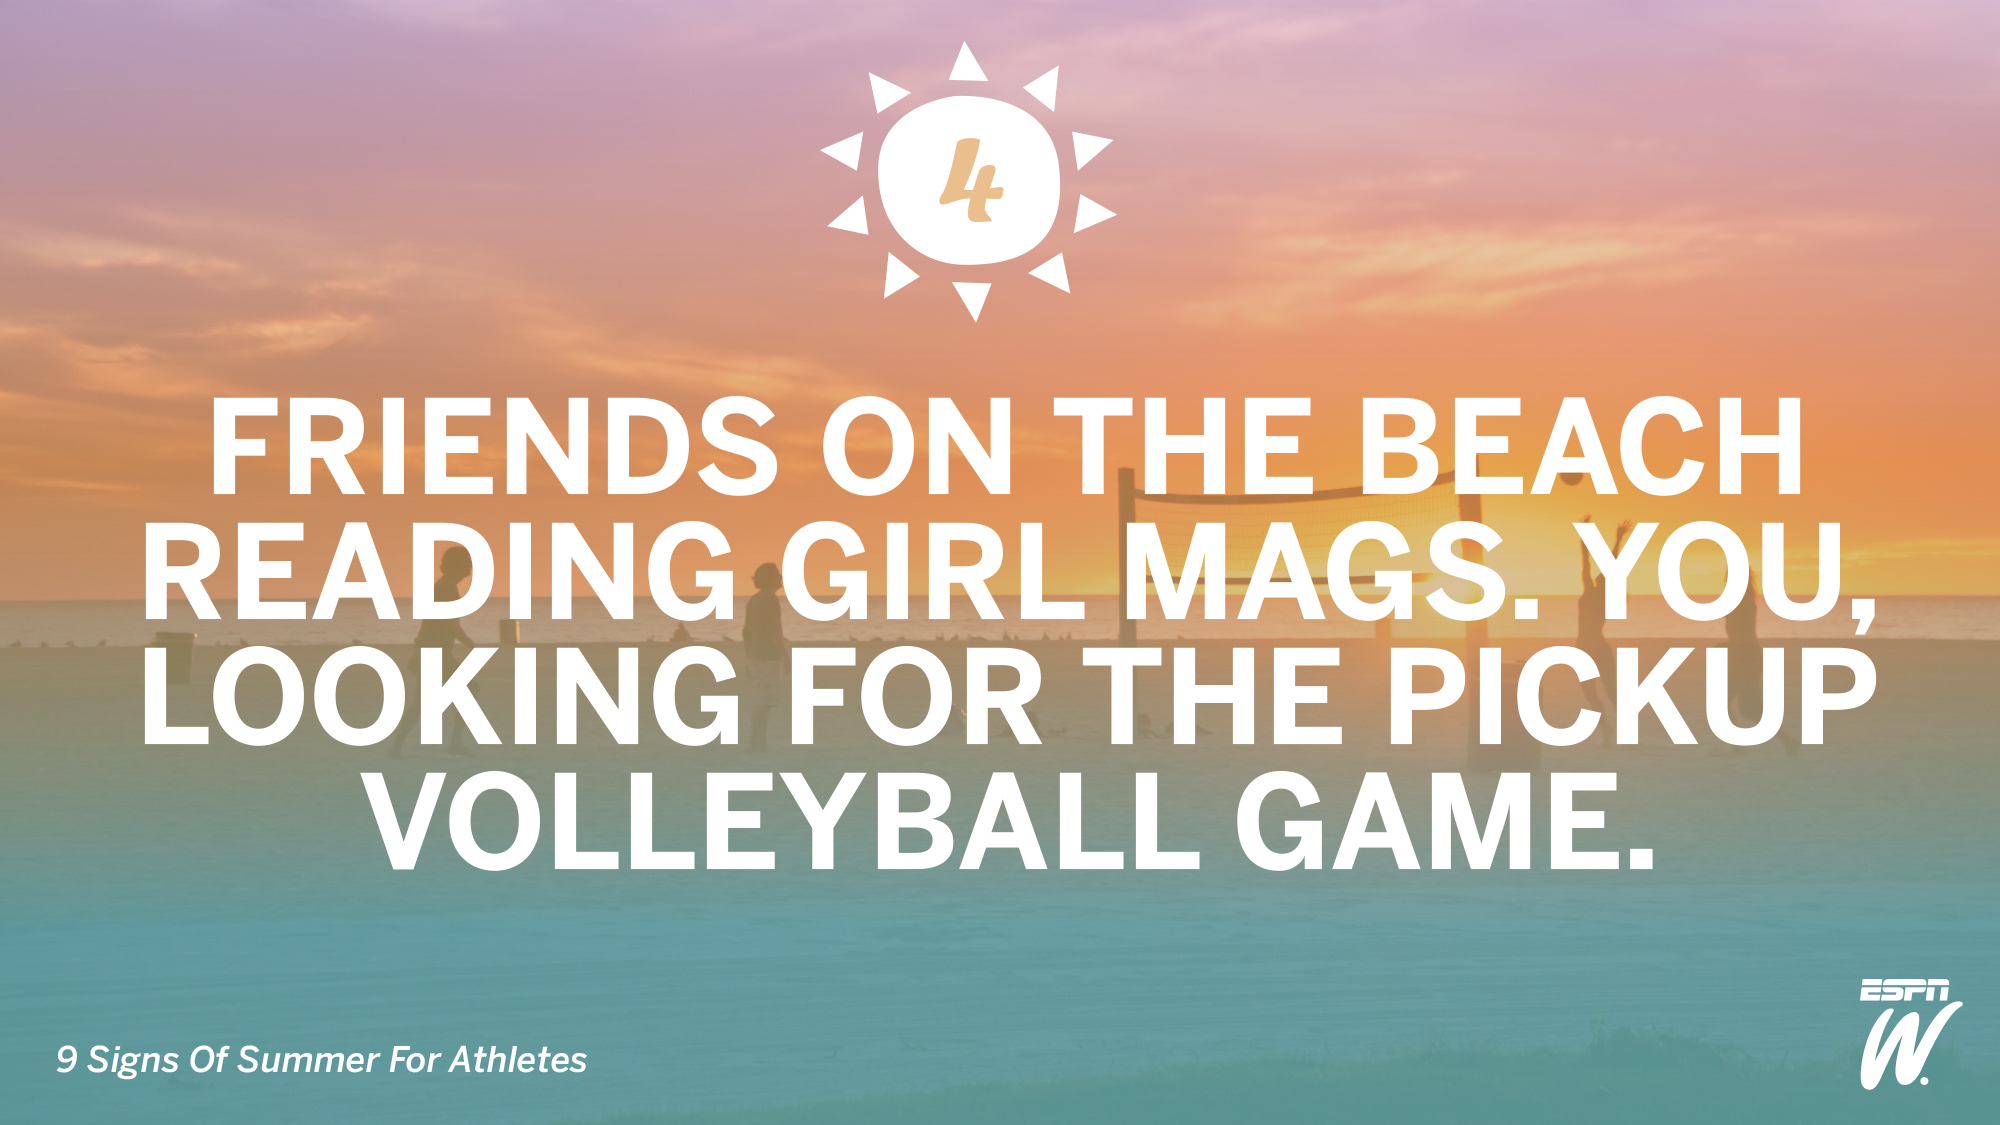 No. 4: Pickup Volleyball Matches